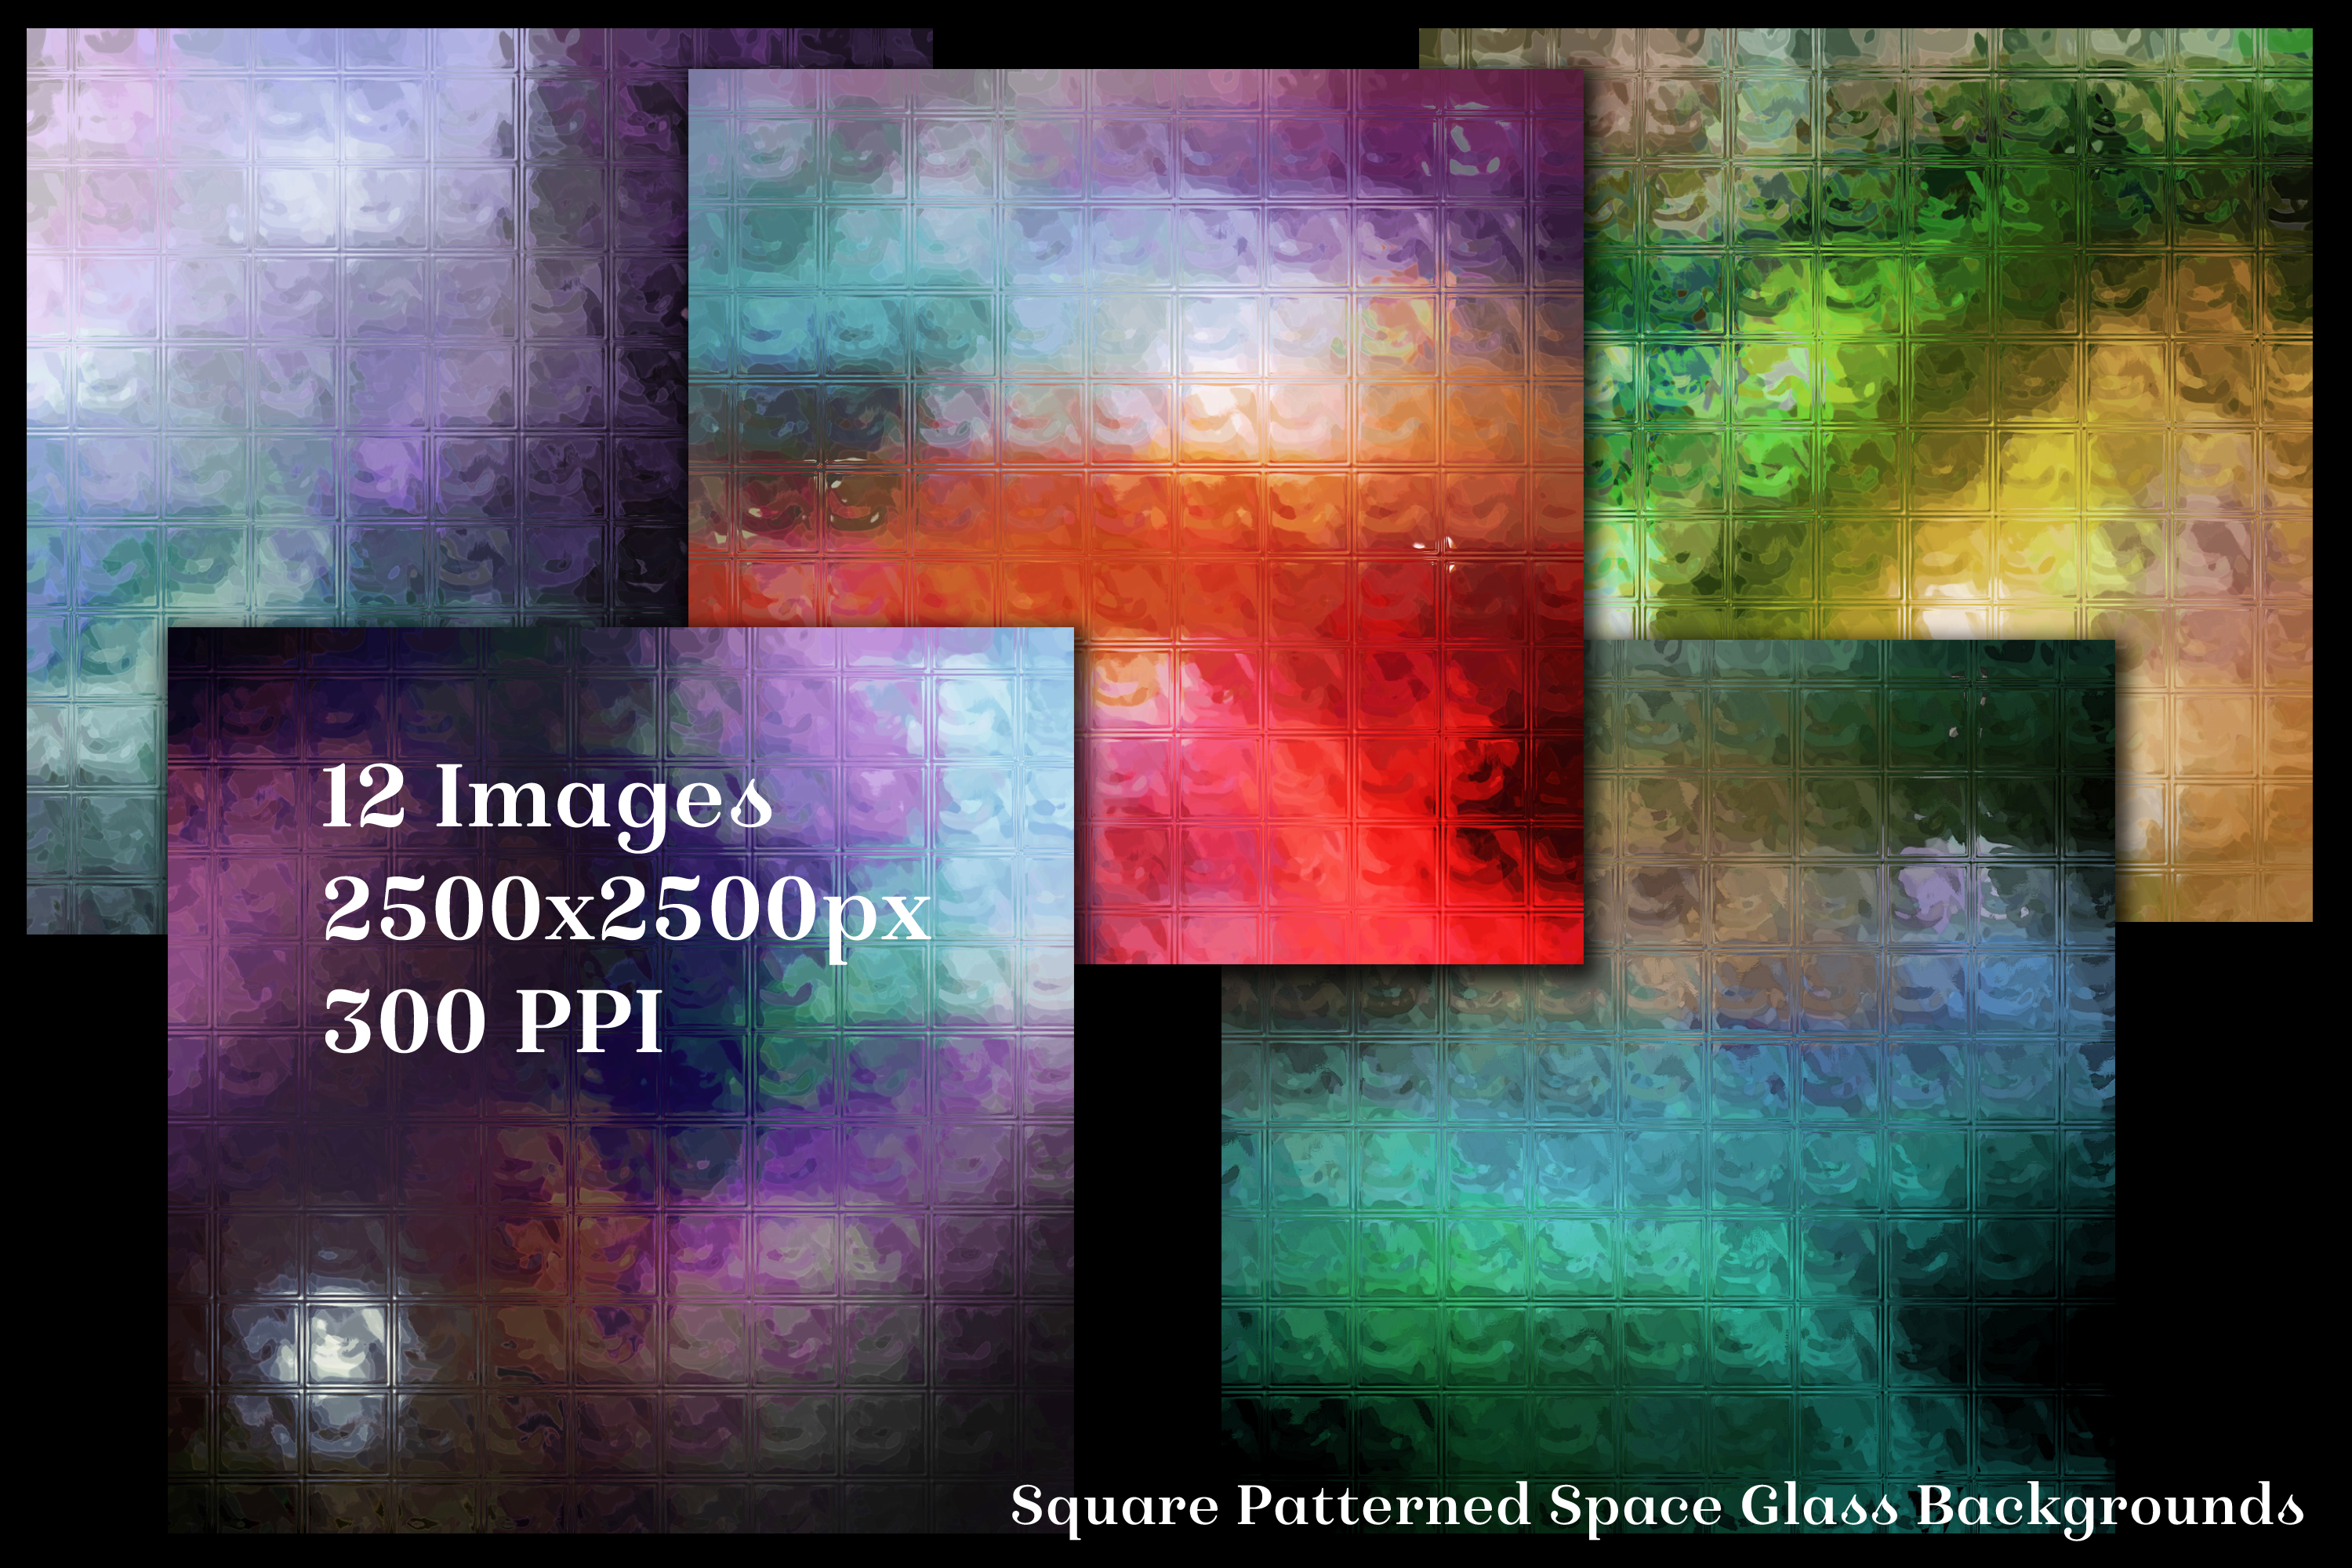 Square Patterned Space Glass Backgrounds - 12 Image Textures example image 2